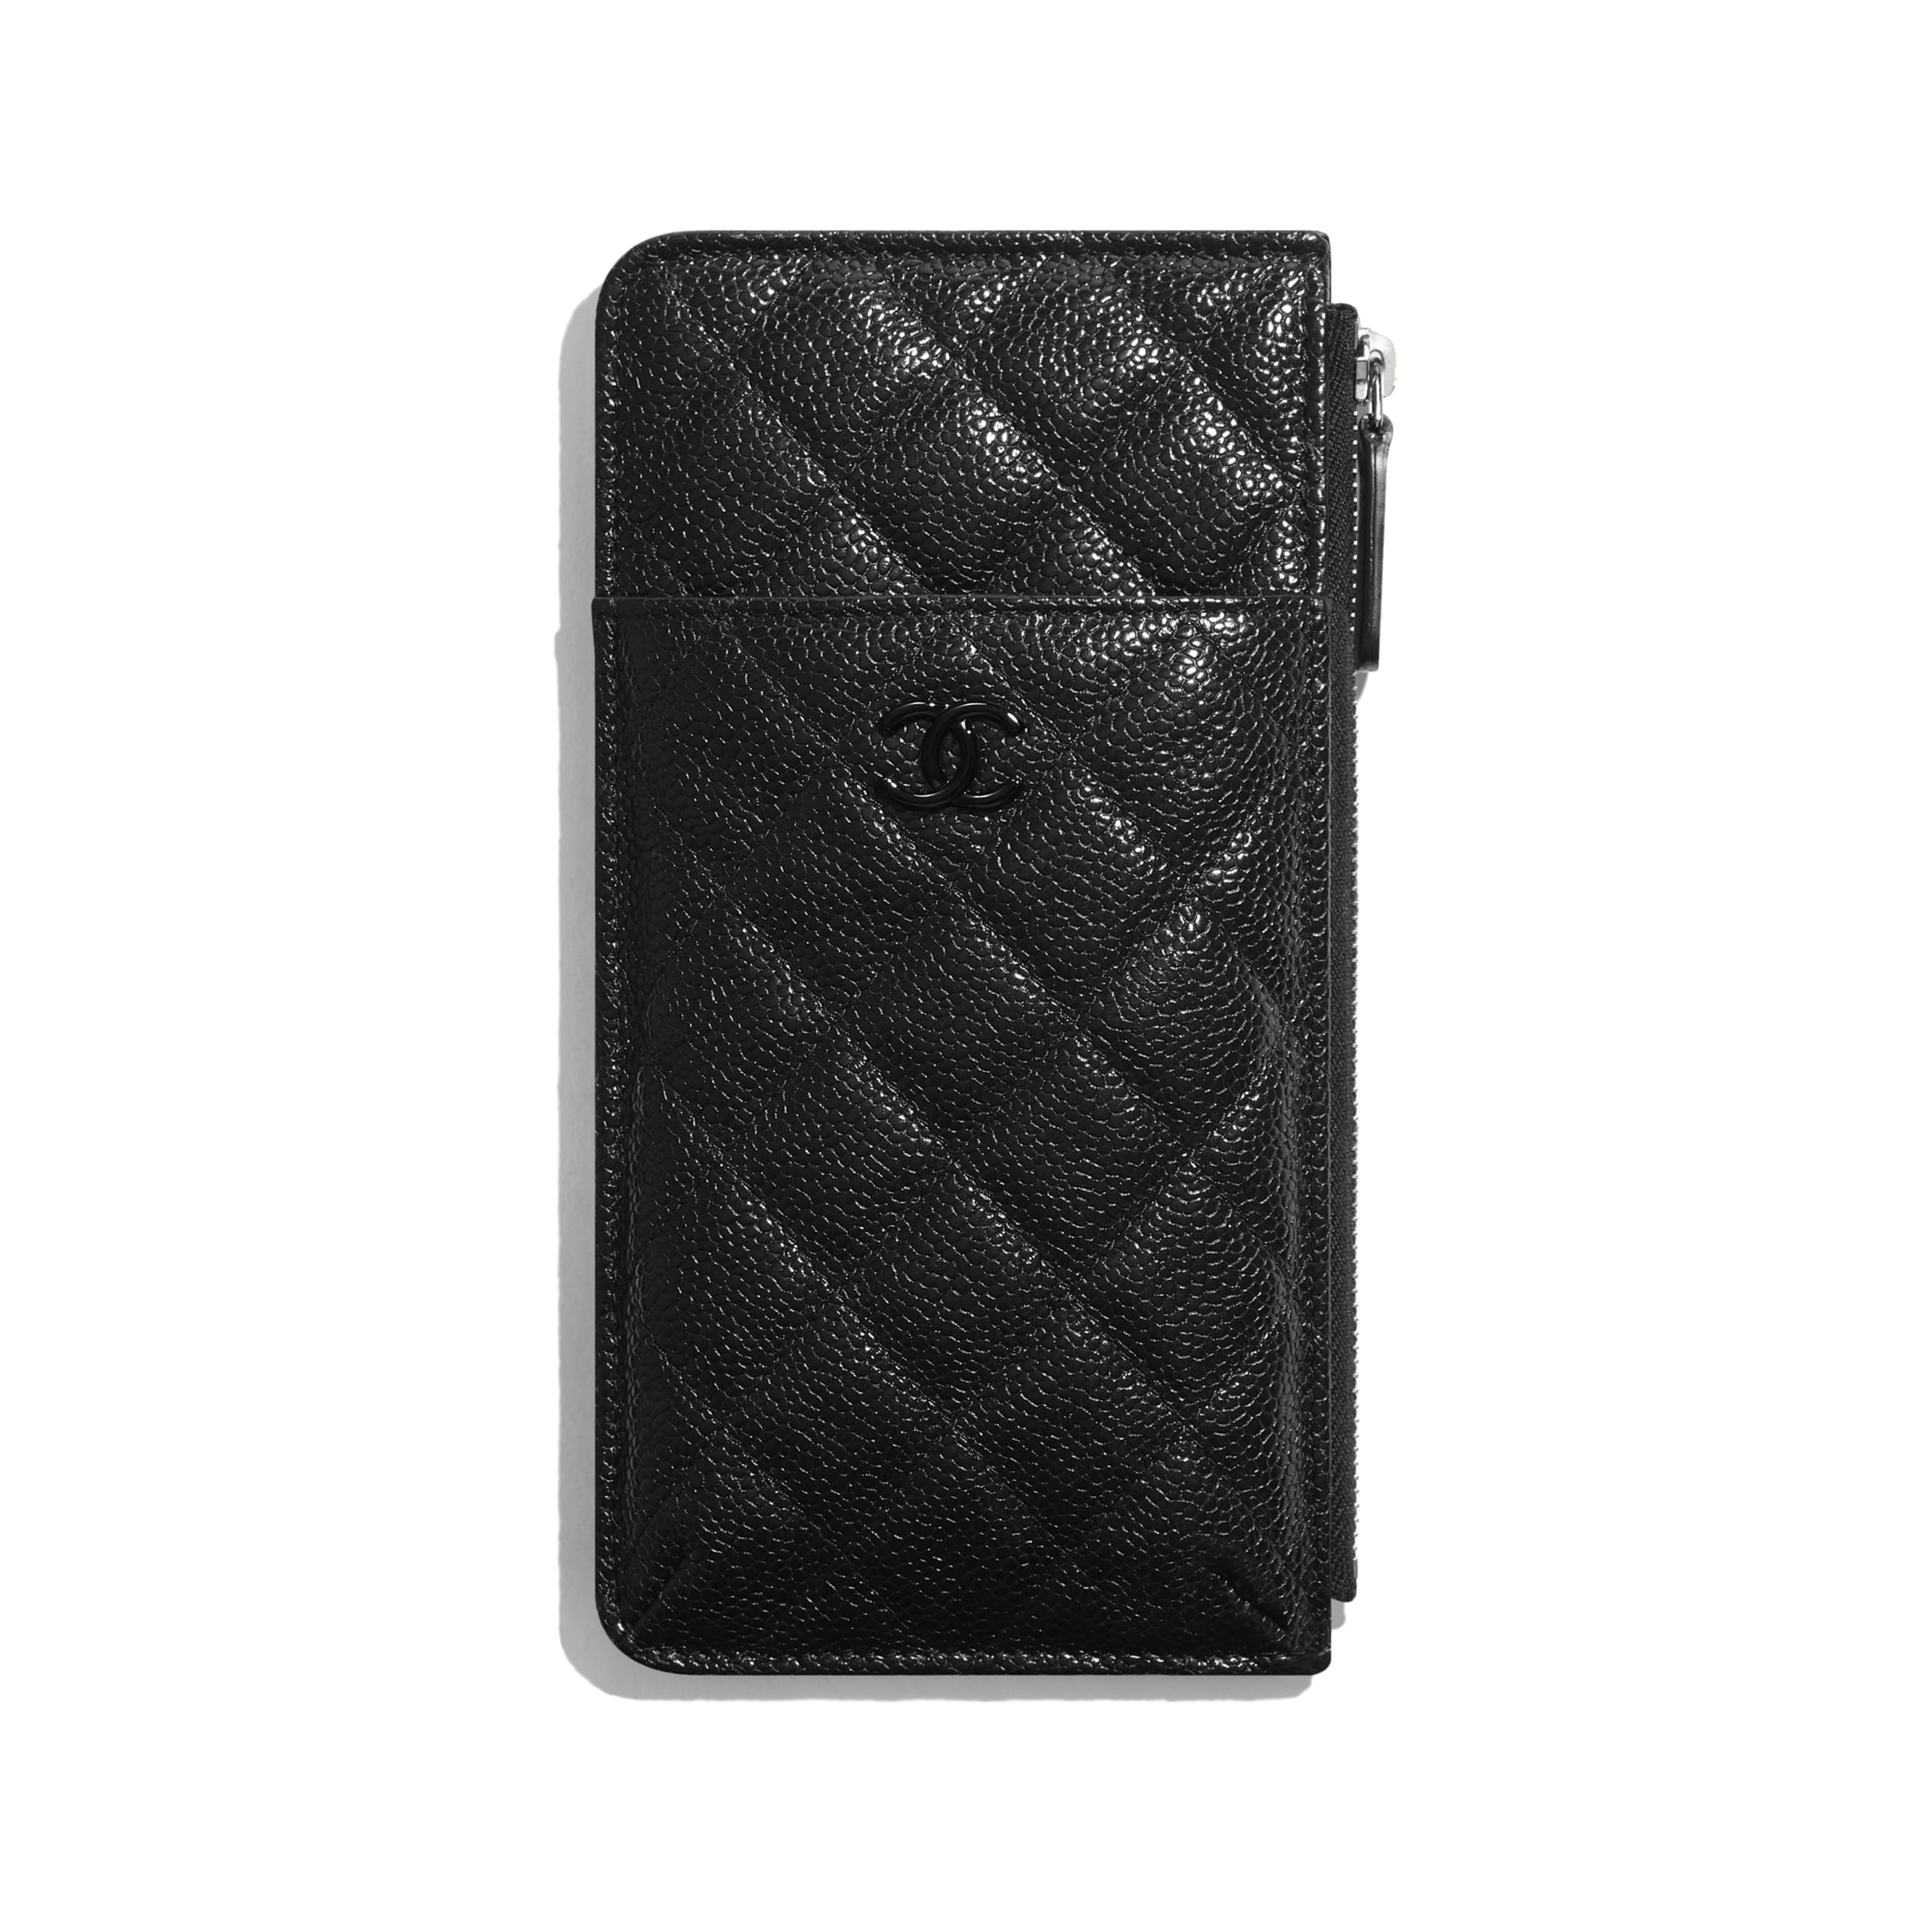 Phone & Card Holder - Black - Grained Calfskin & Lacquered Metal - CHANEL - Default view - see standard sized version